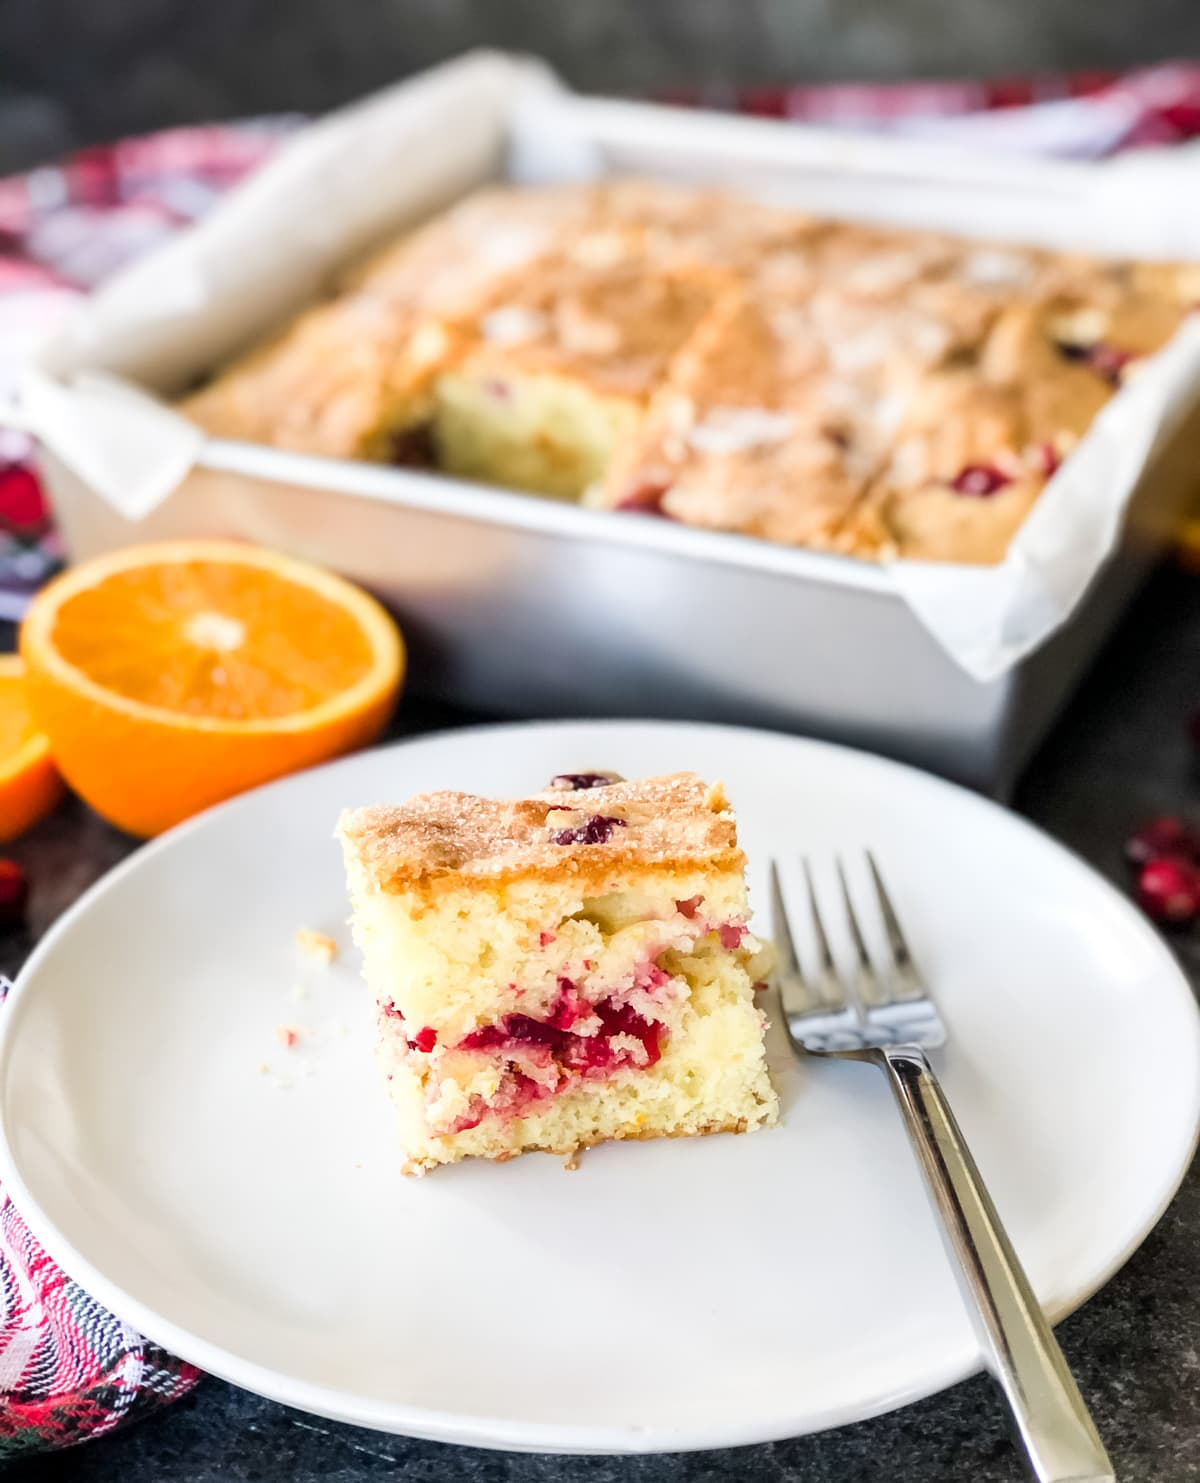 A close up of a cut square of Cranberry Orange Breakfast Cake on a plate with a fork